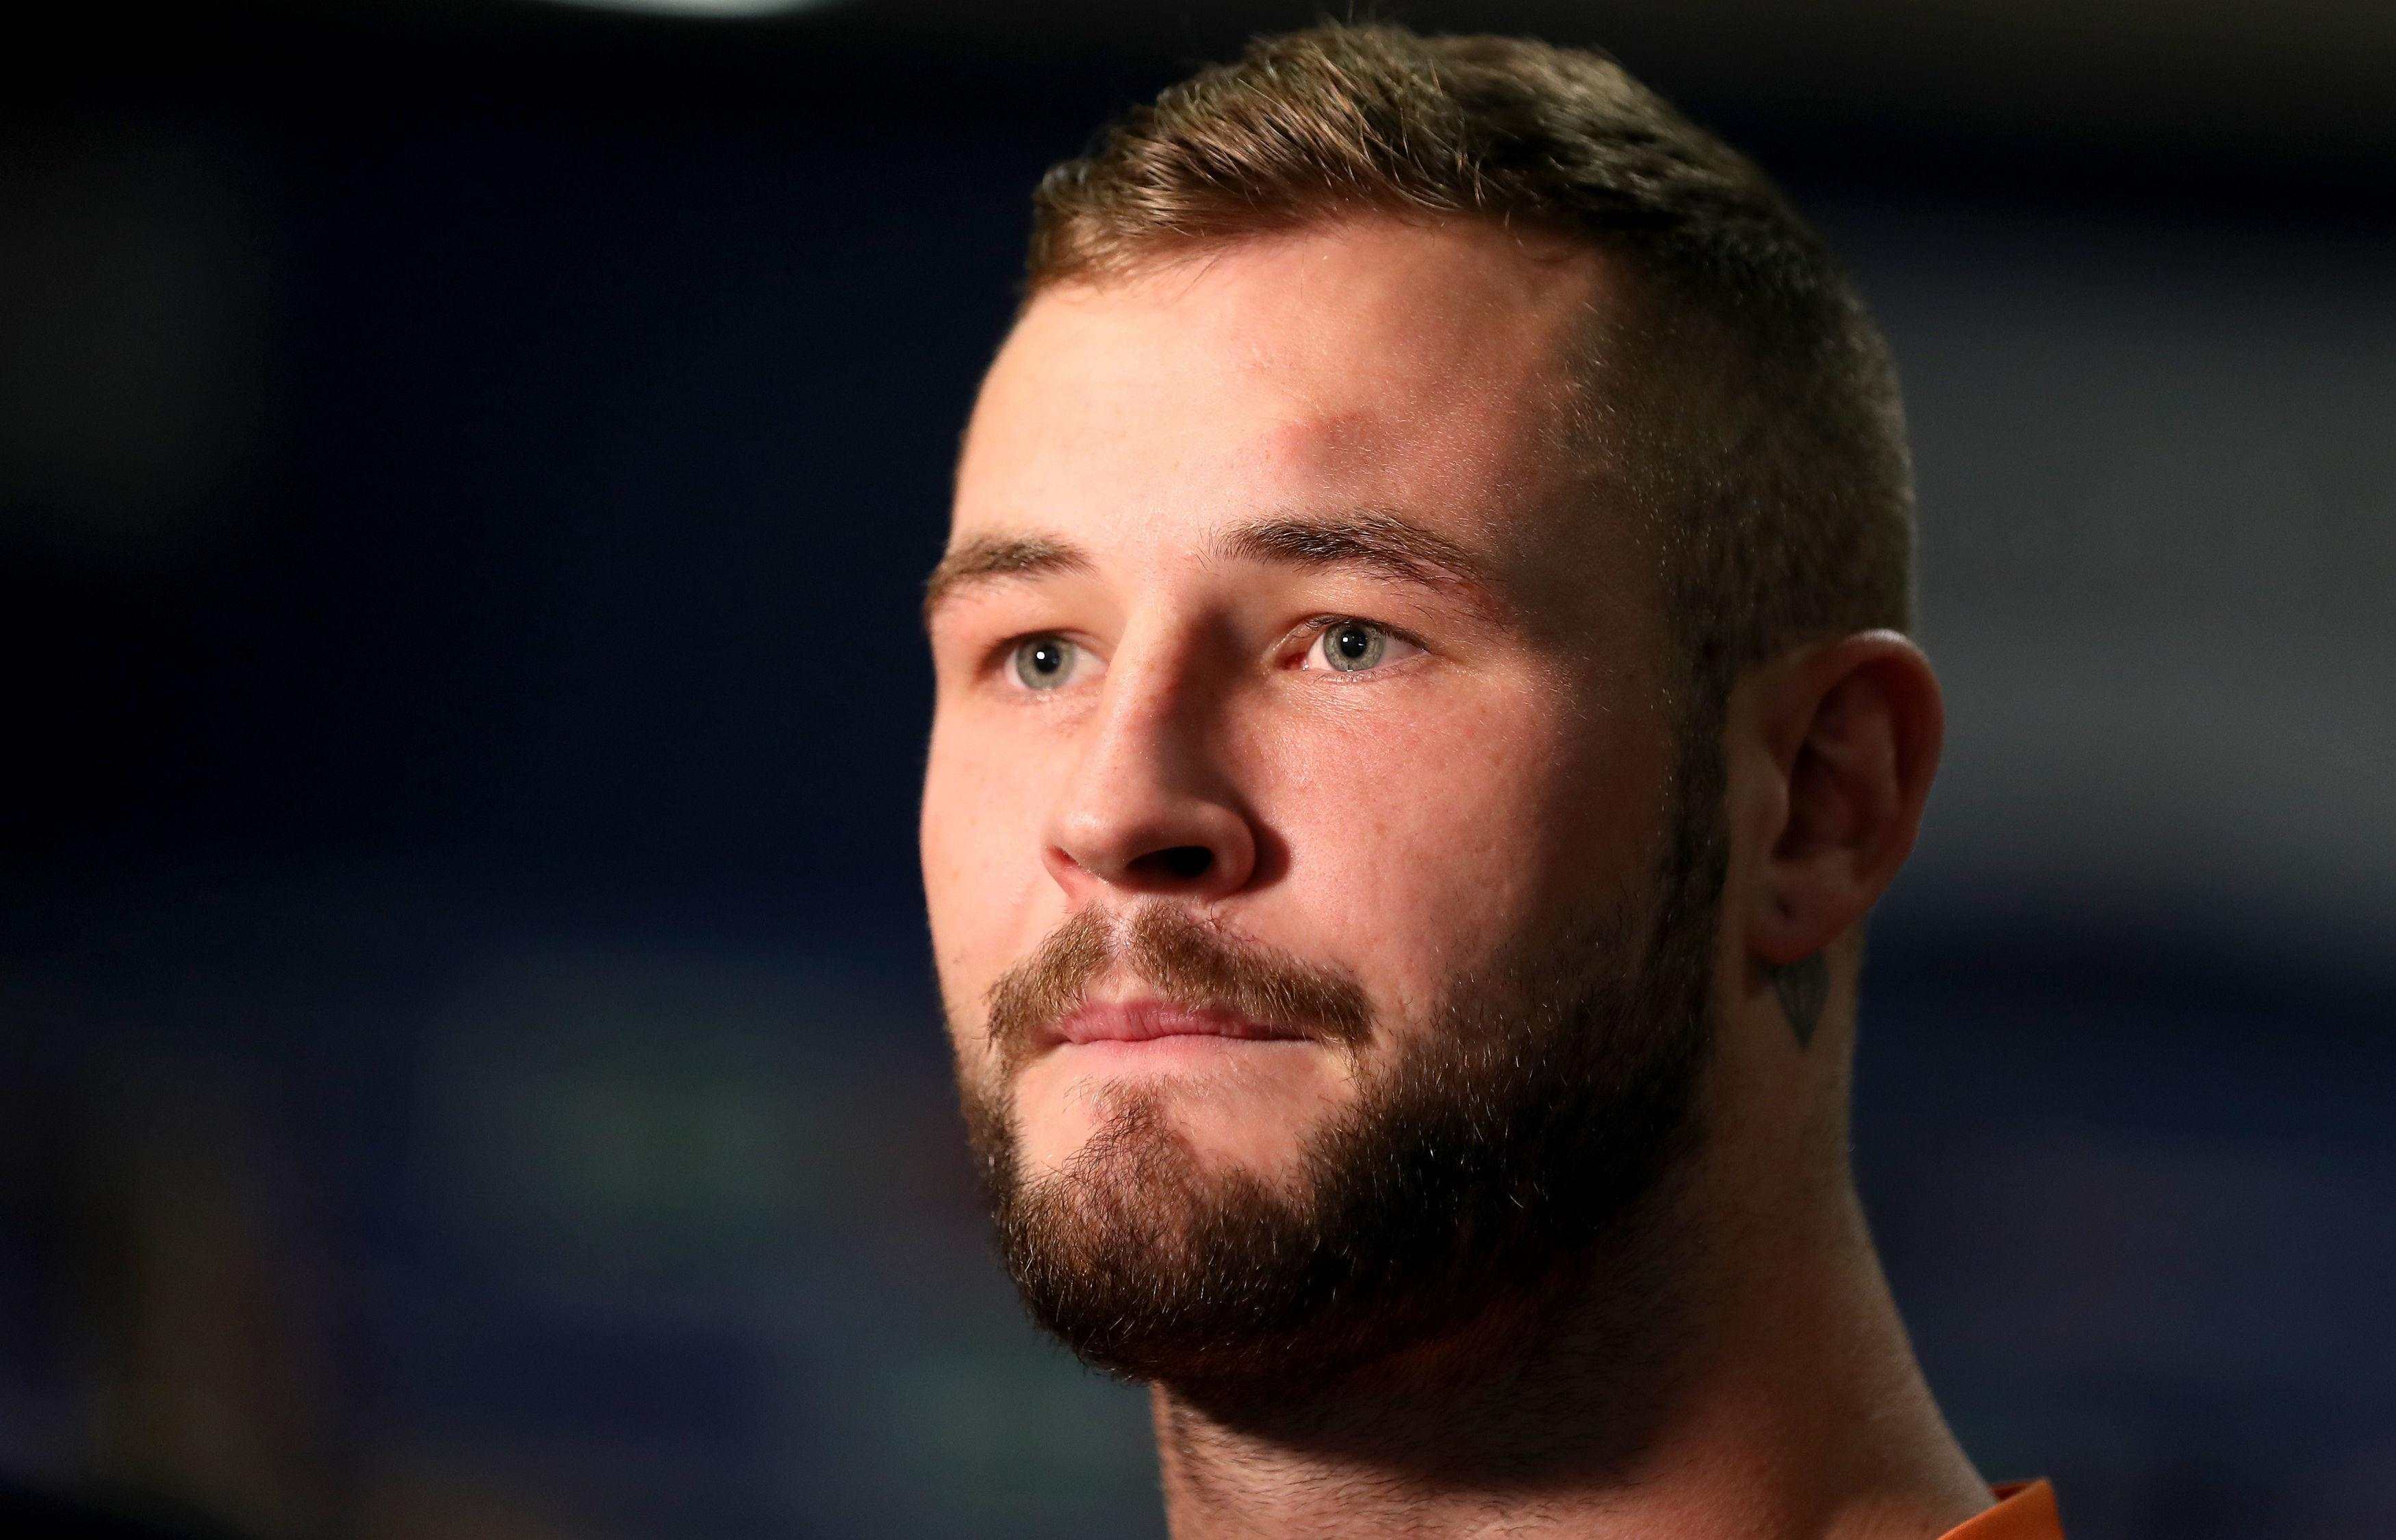 Hardaker was sacked by Castleford for testing positive for cocaine